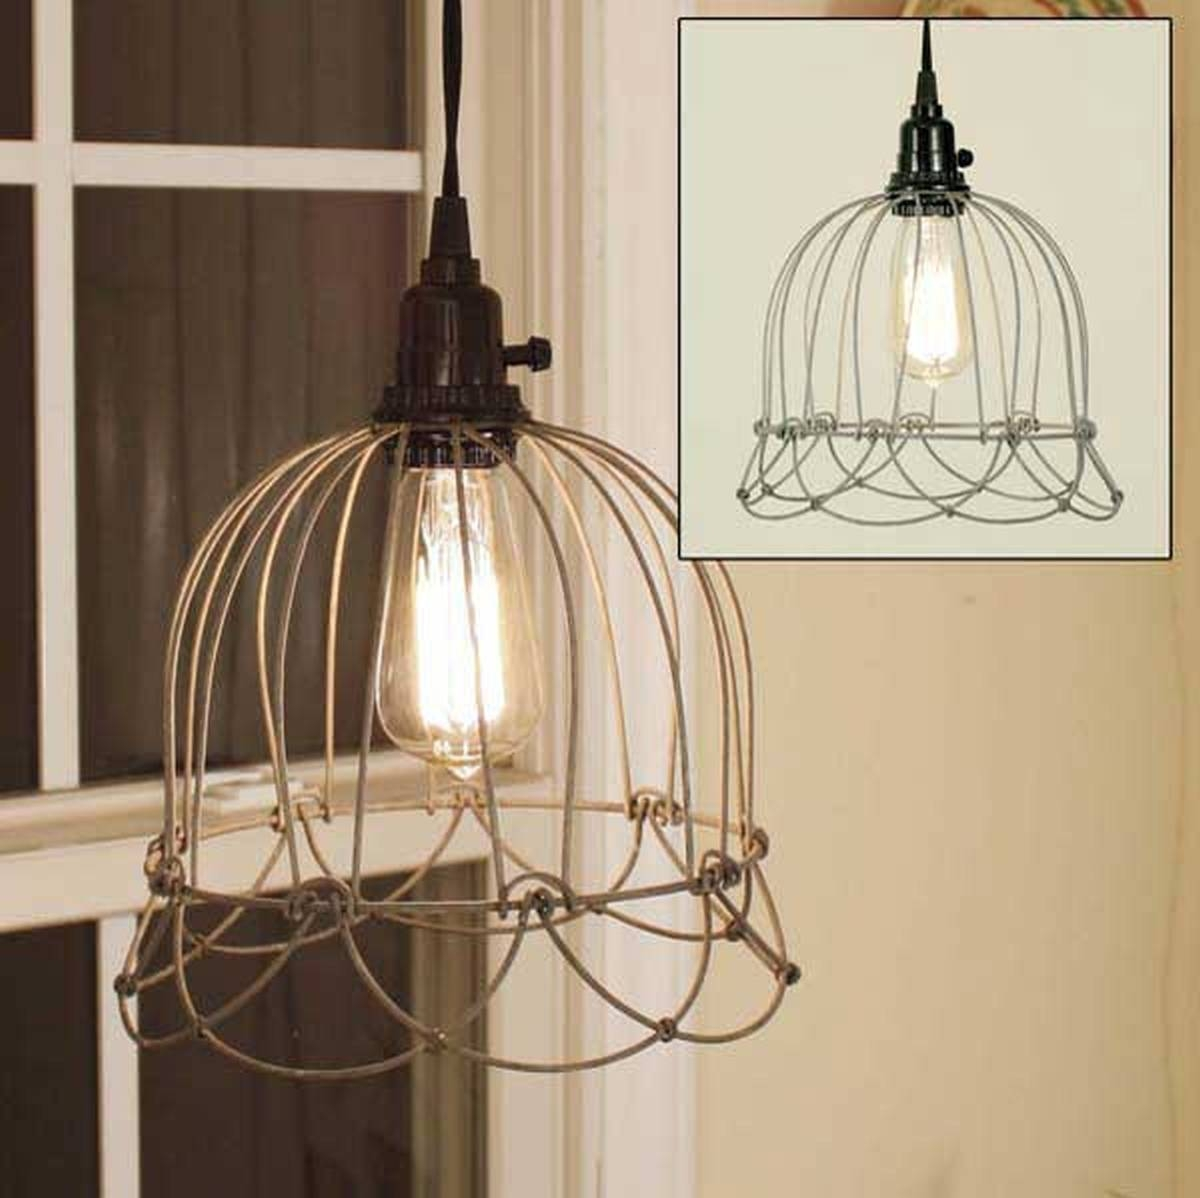 Amusing Wire Pendant Light 96 In Drum Shade Ceiling Light With with Chicken Wire Pendant Lights (Image 6 of 15)